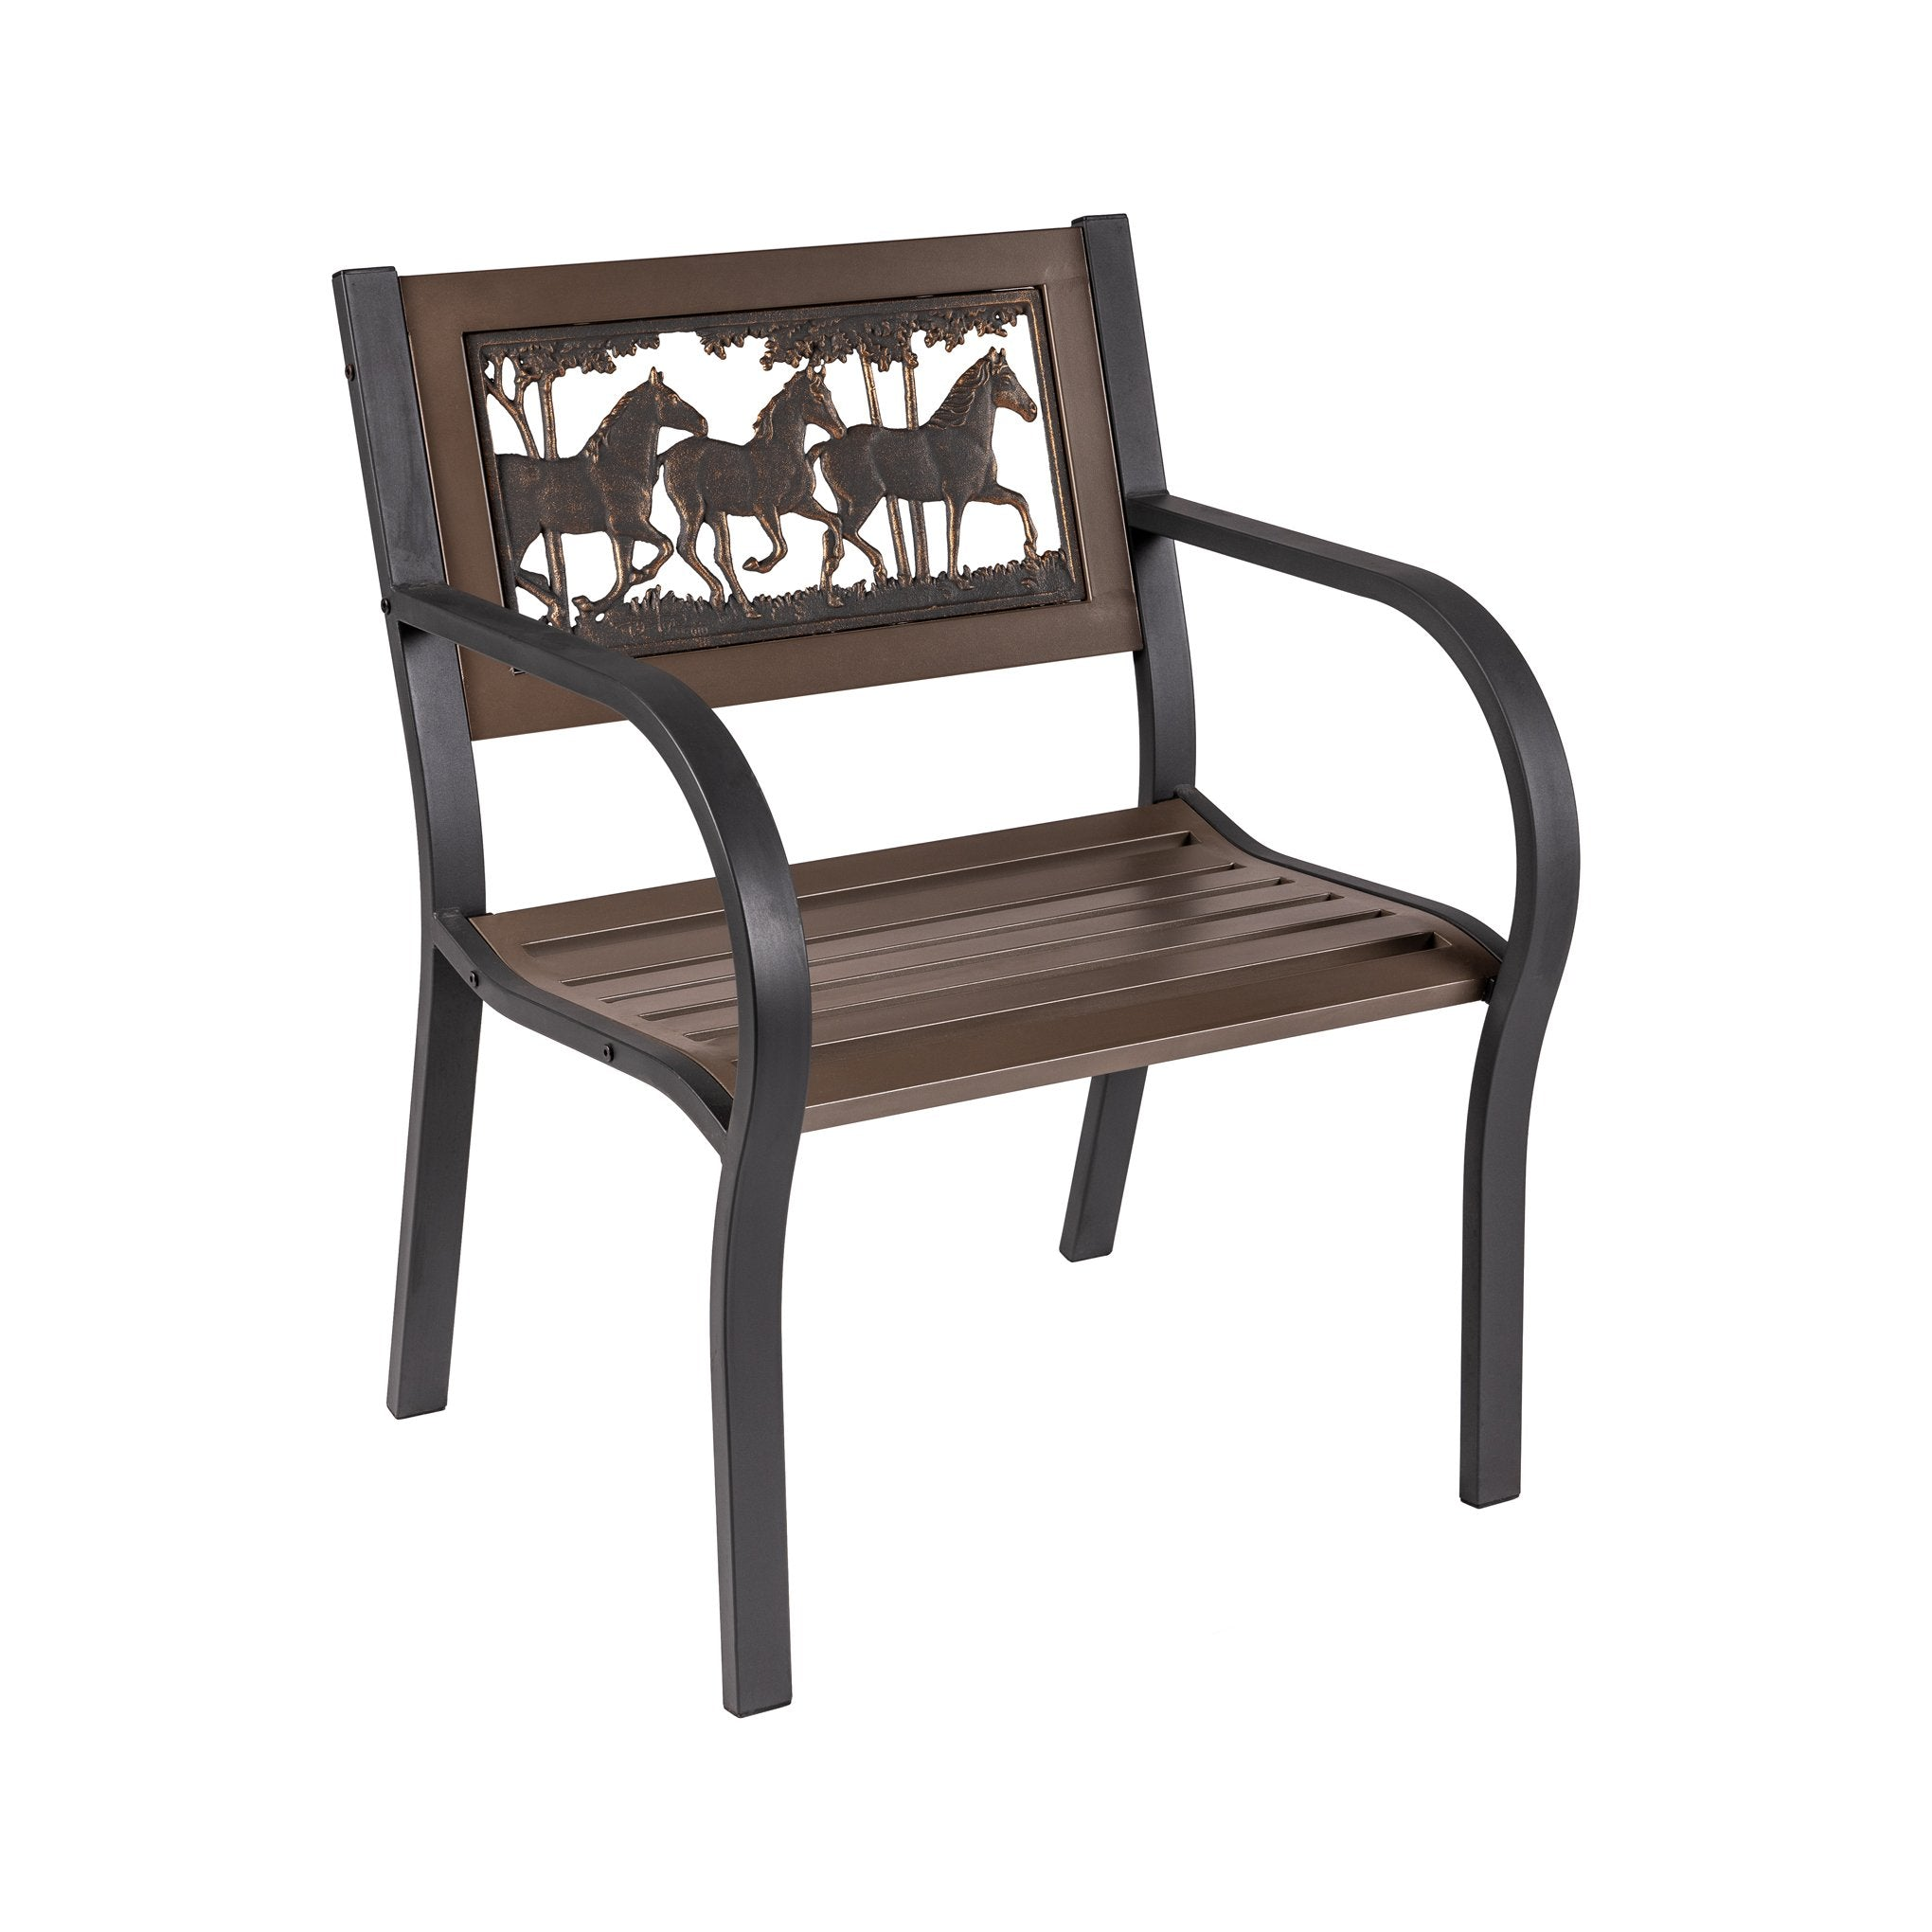 Running Horses Chair